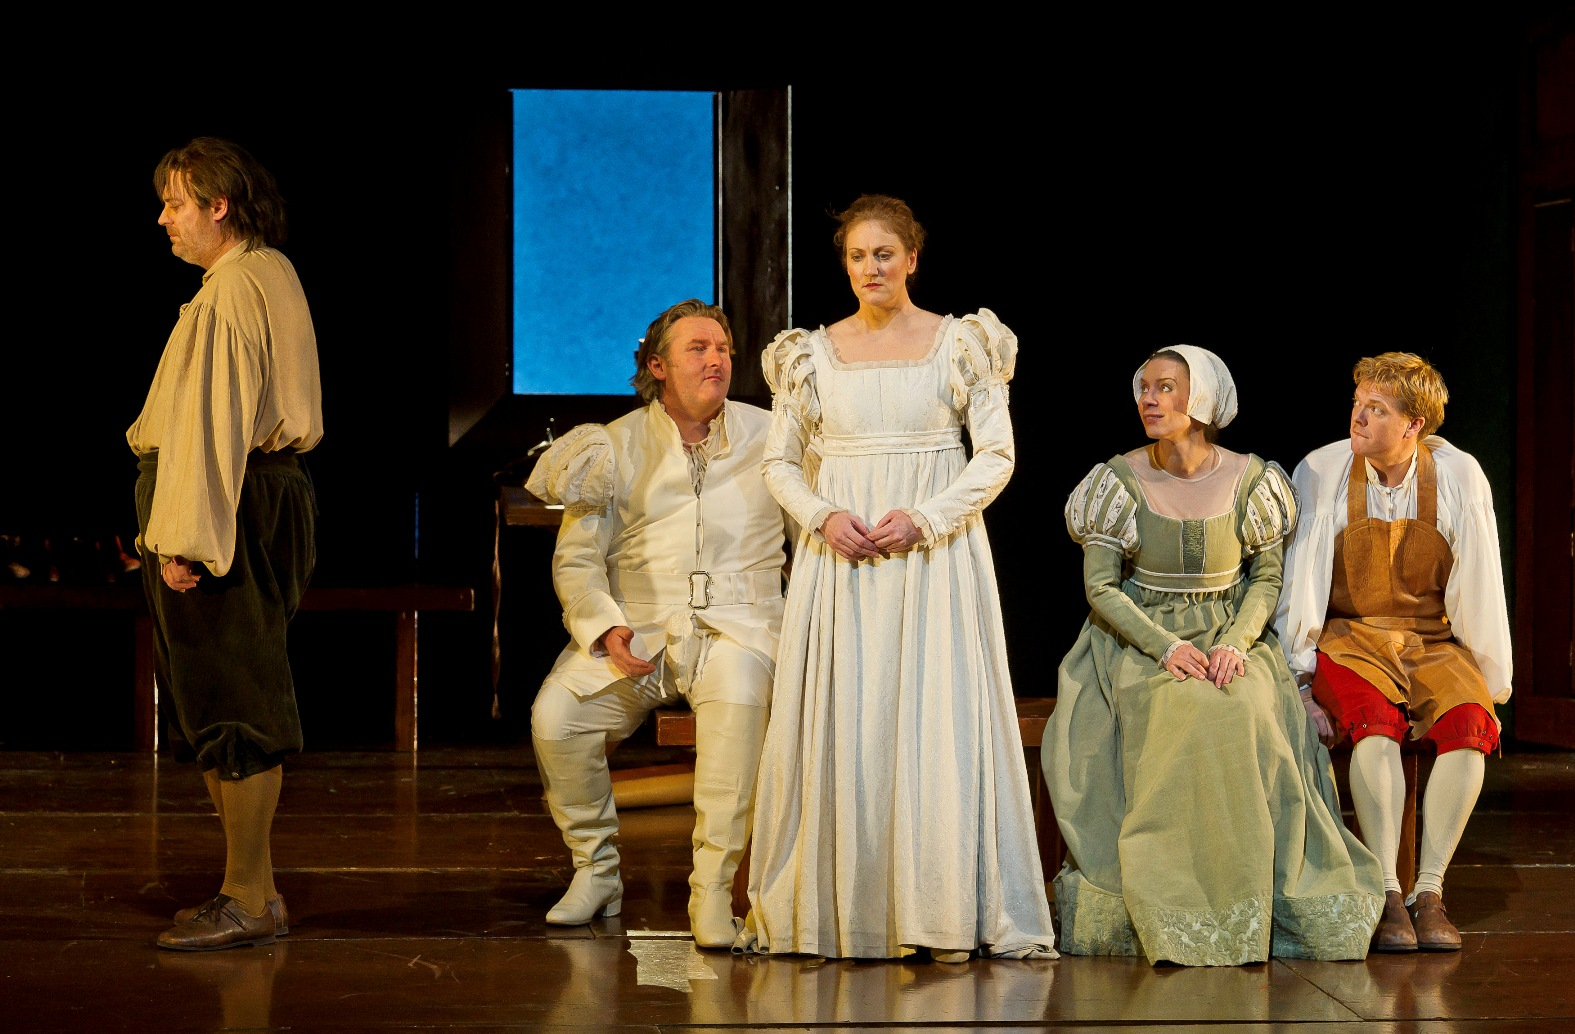 The Act III Quintet of Die Meistersinger at the Royal Opera